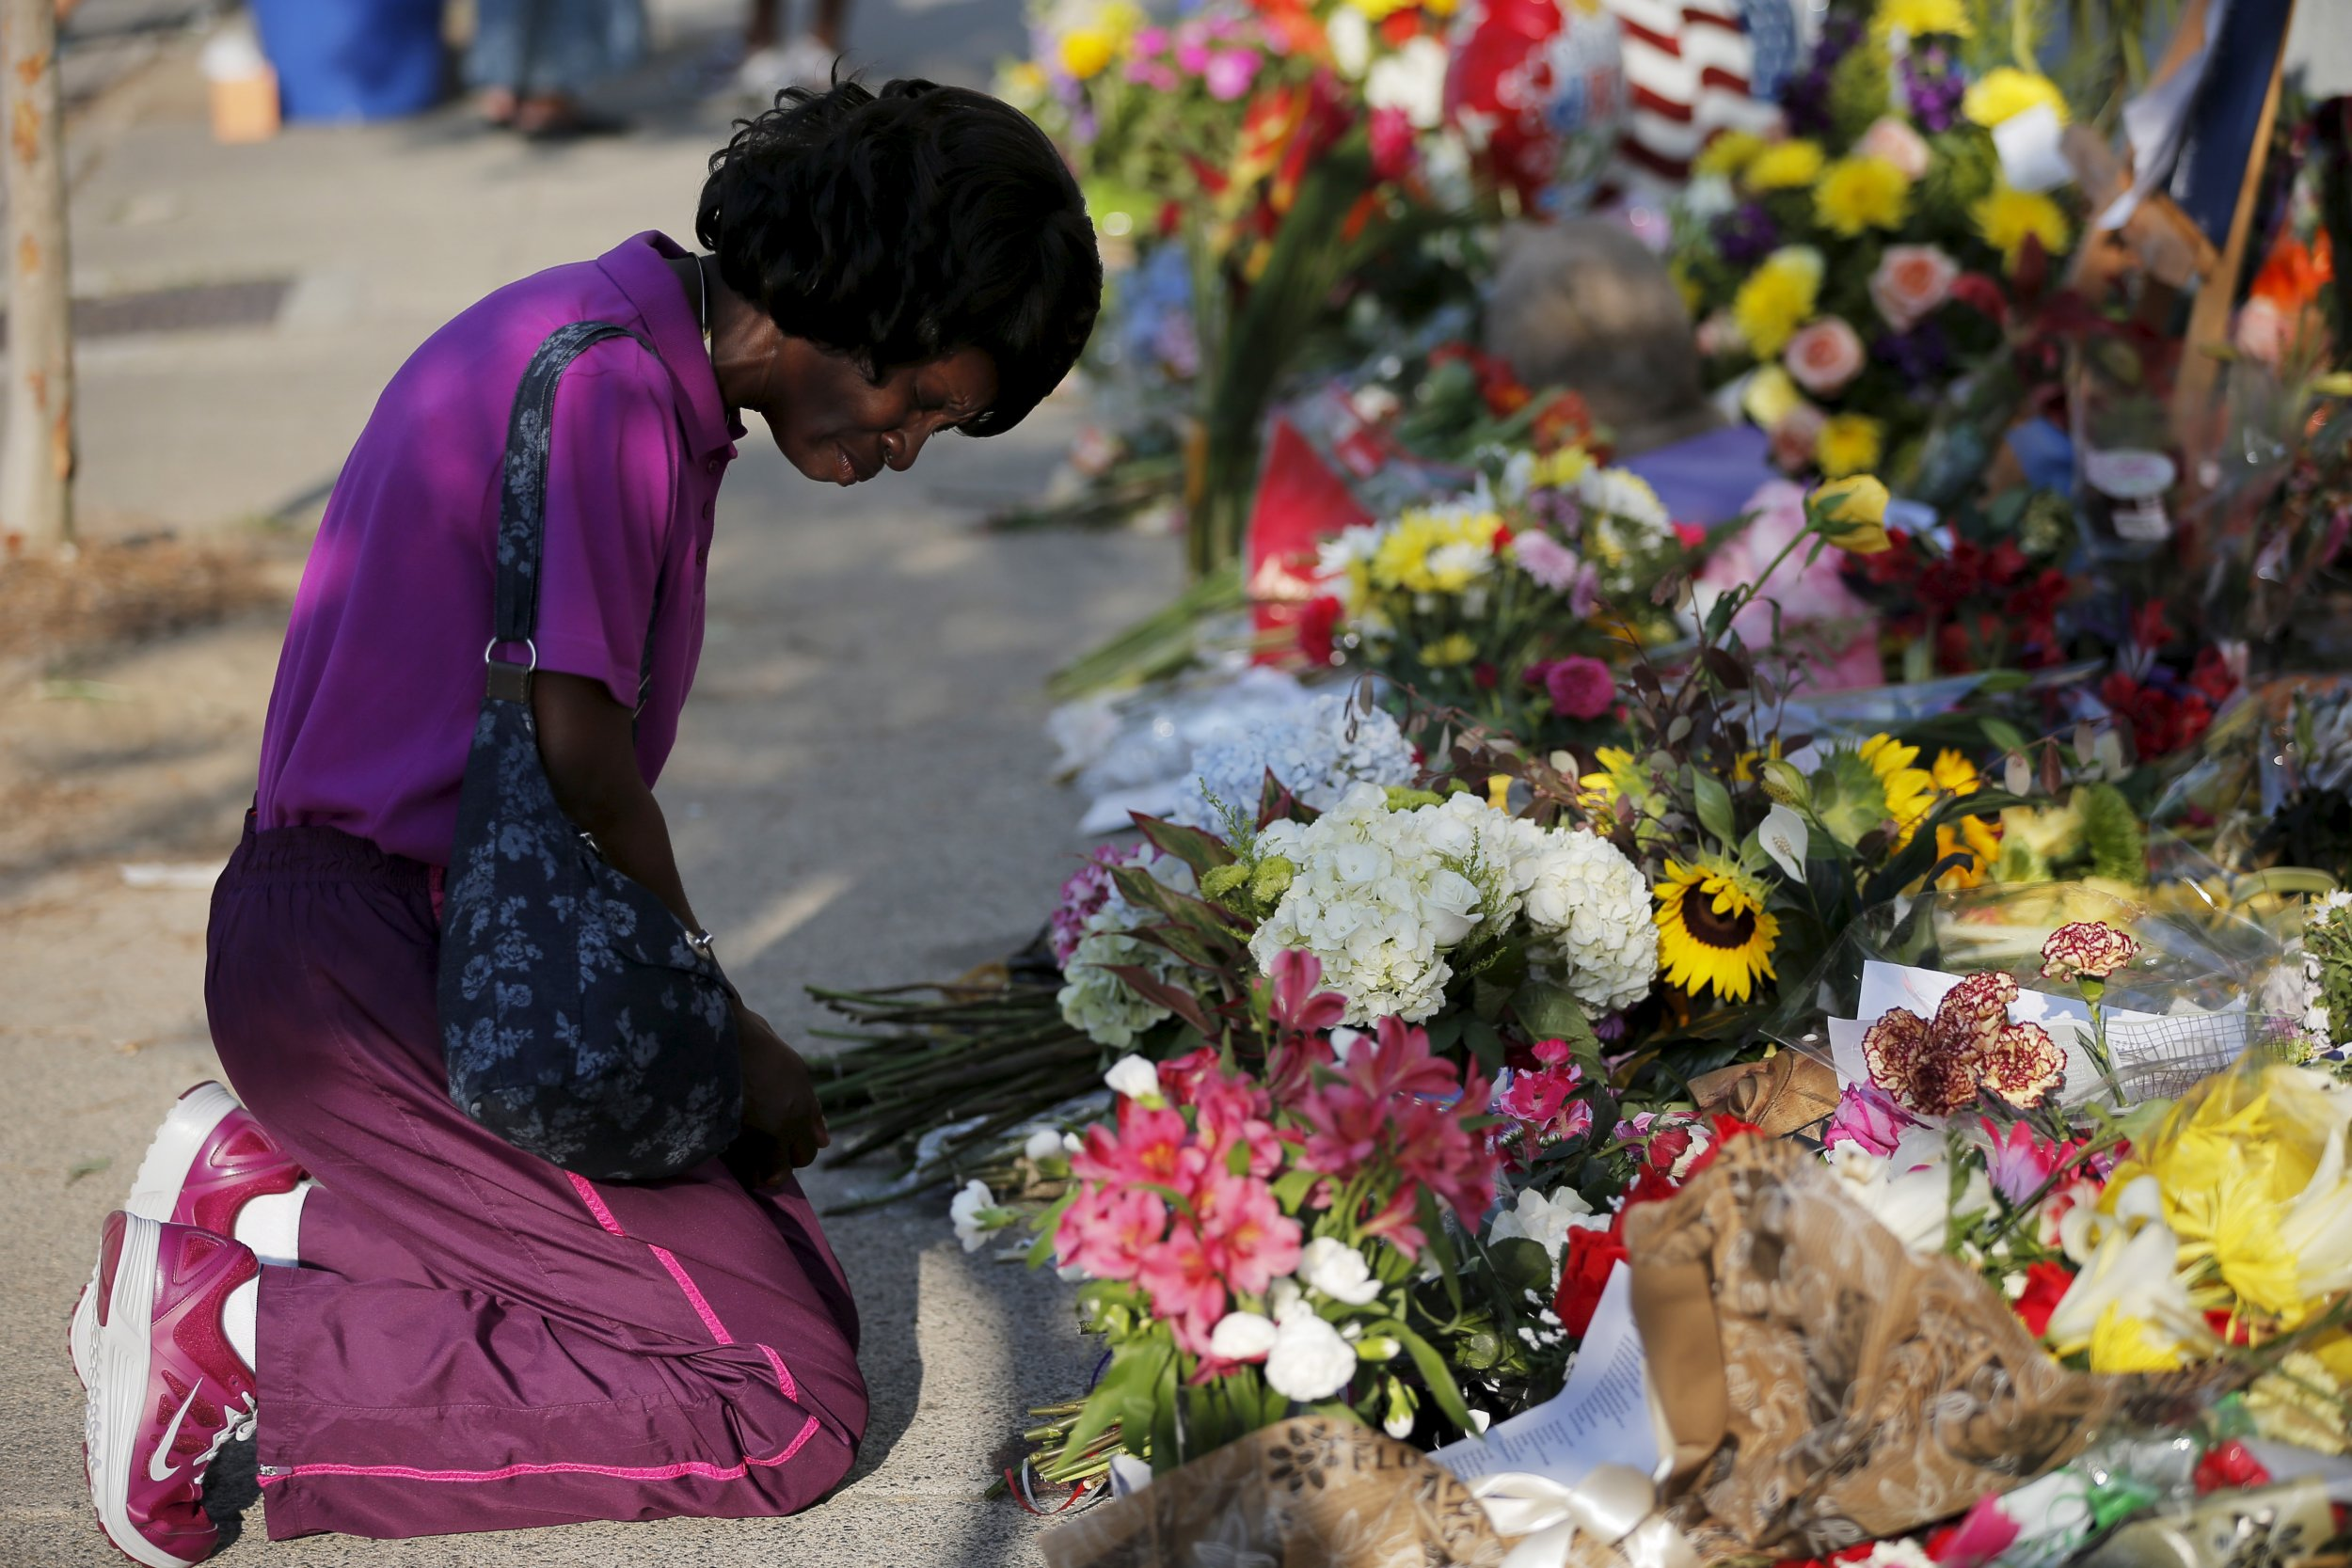 Christ Church Shooting Hd: Mourners Gather In Charleston After Church Shooting